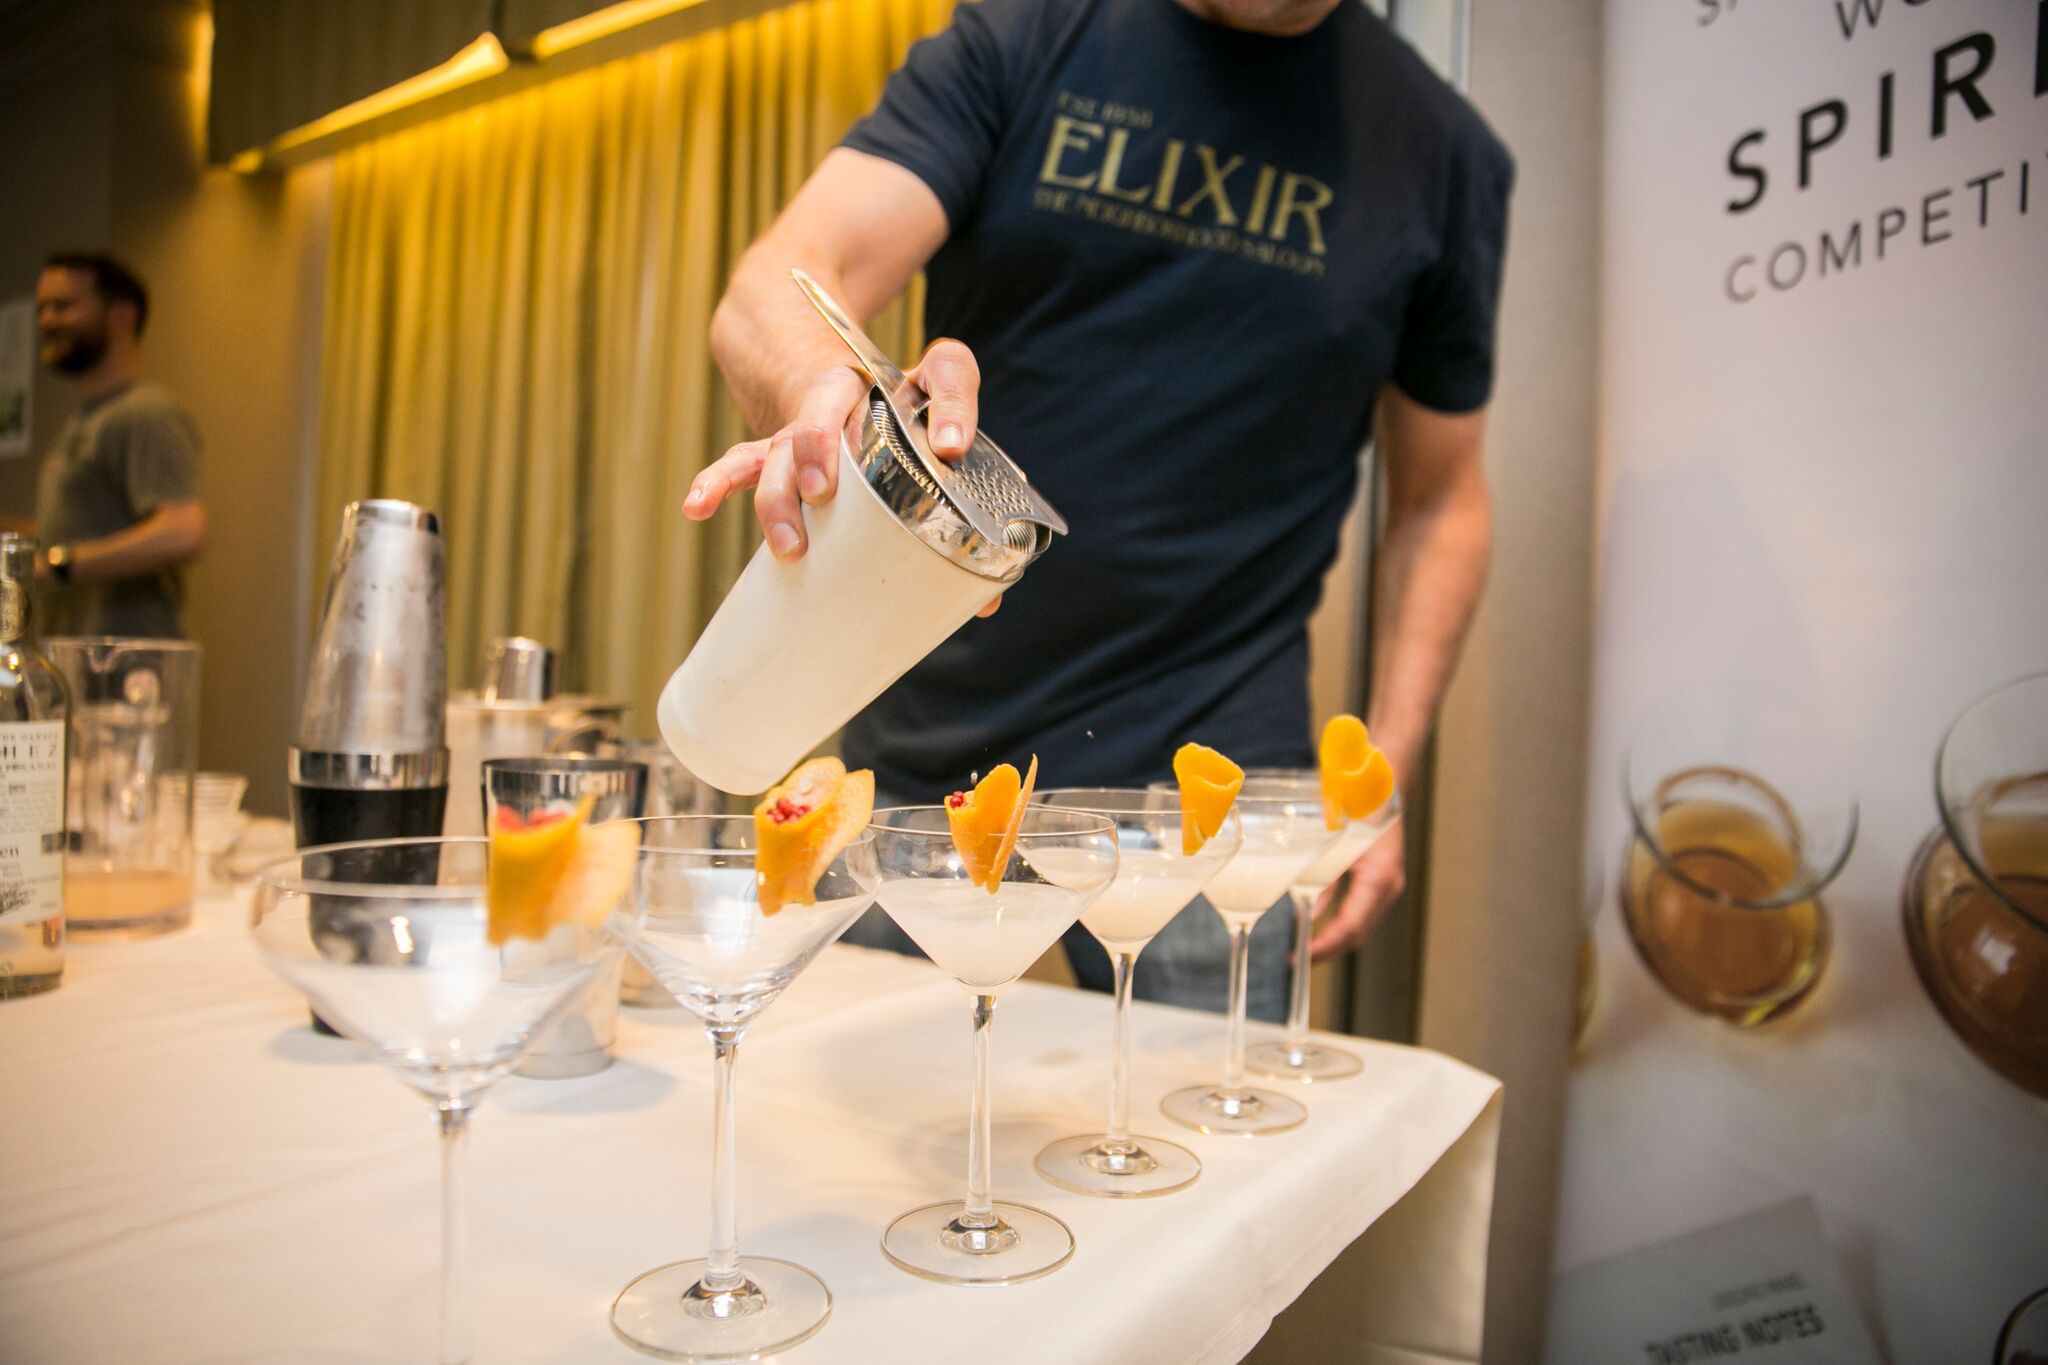 Mixing cocktails at the competition